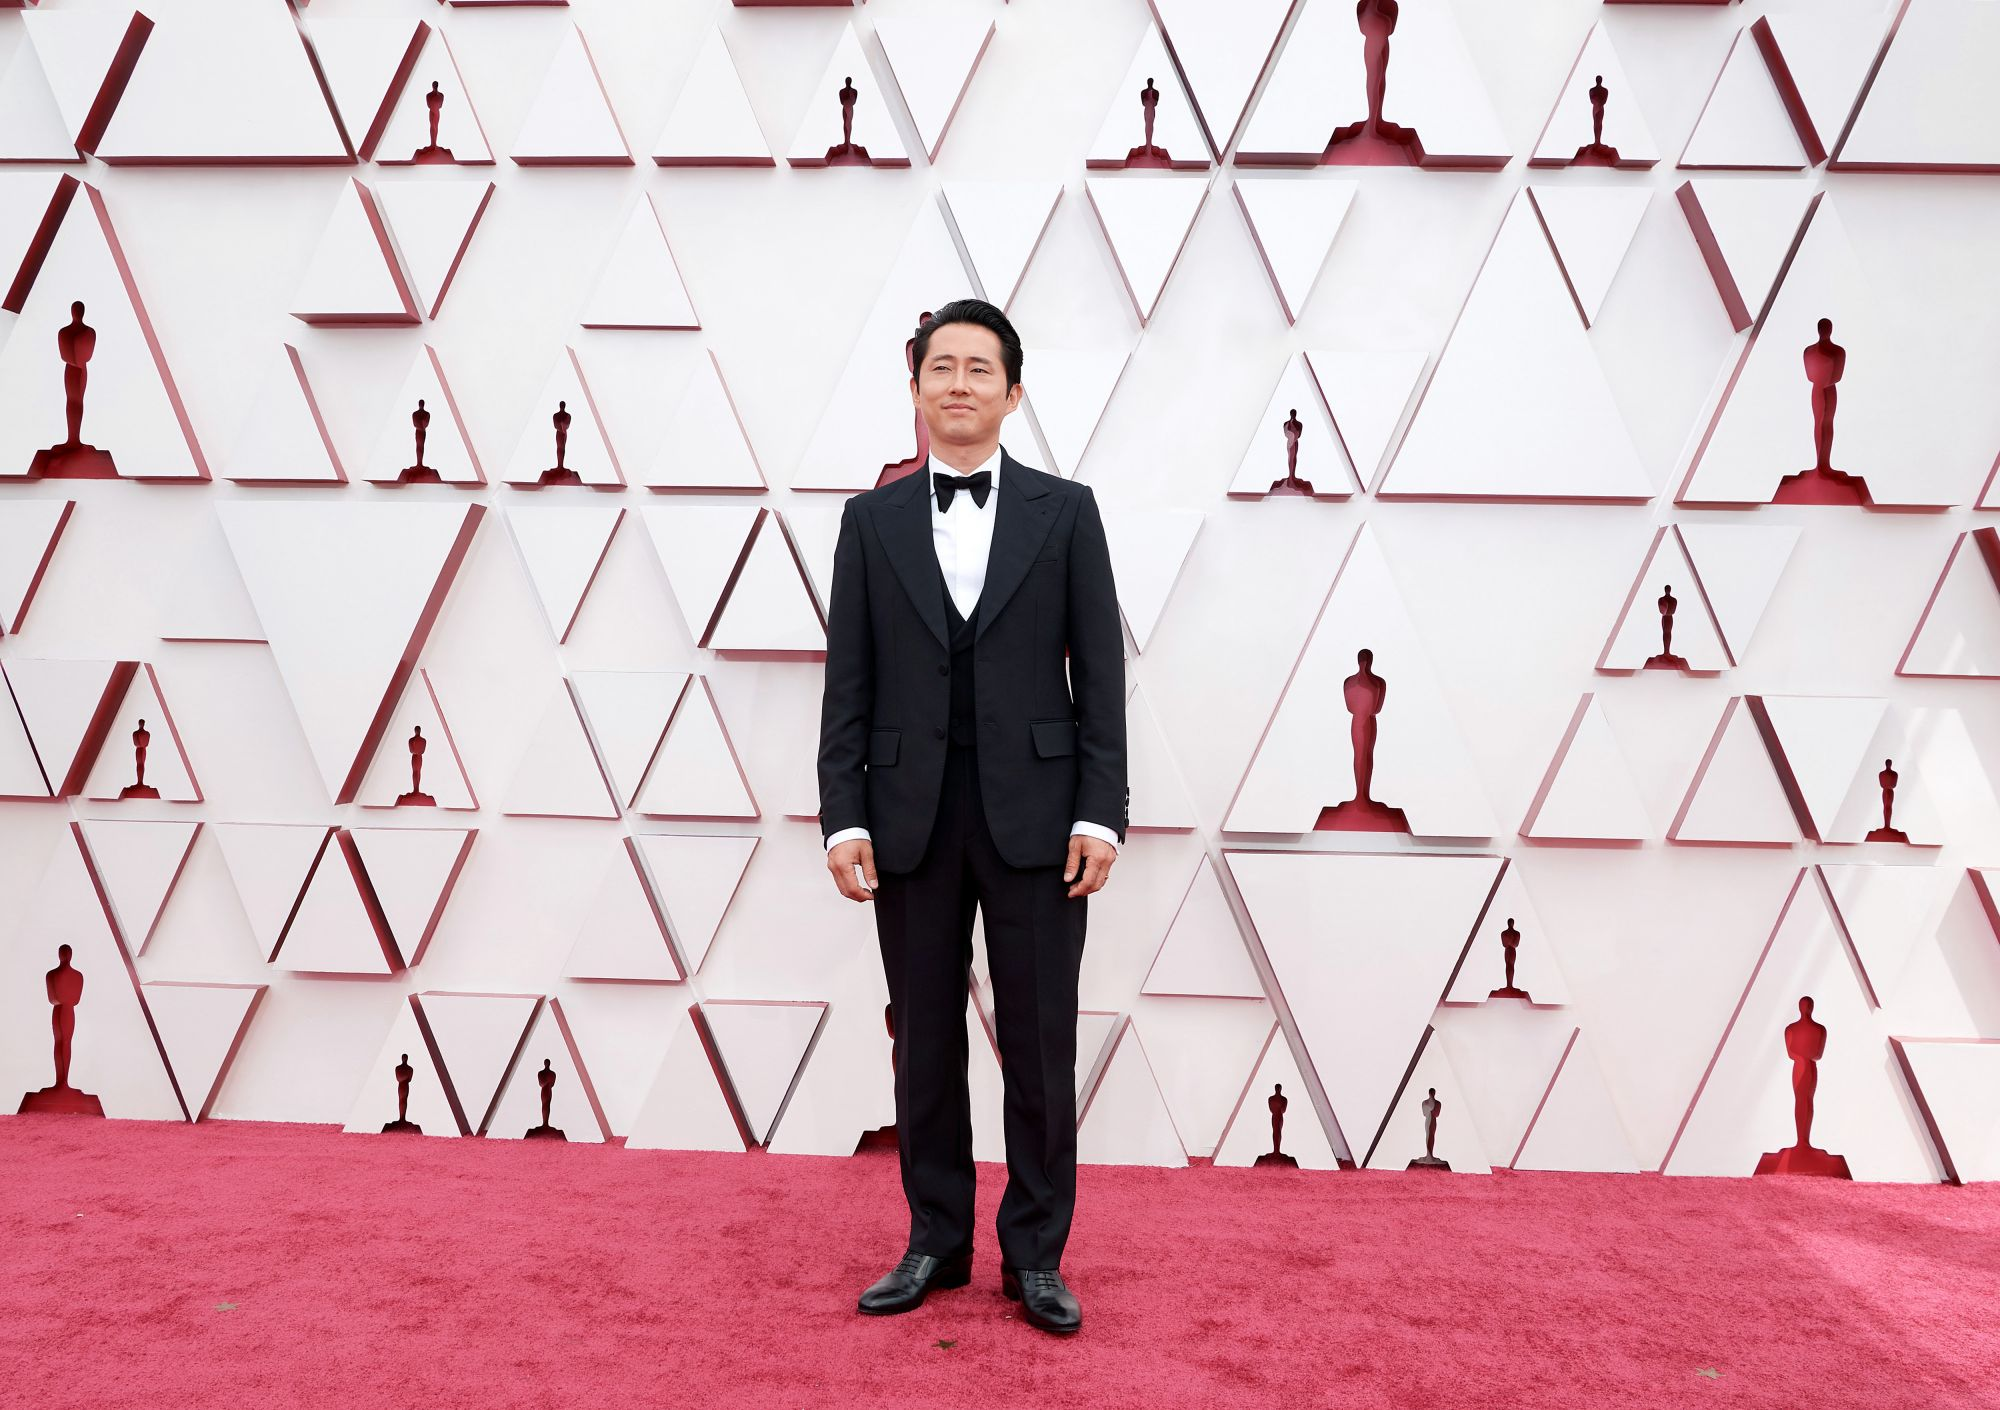 LOS ANGELES, CALIFORNIA – APRIL 25: (EDITORIAL USE ONLY) In this handout photo provided by A.M.P.A.S., Steven Yeun attends the 93rd Annual Academy Awards at Union Station on April 25, 2021 in Los Angeles, California. (Photo by Matt Petit/A.M.P.A.S. via Getty Images)